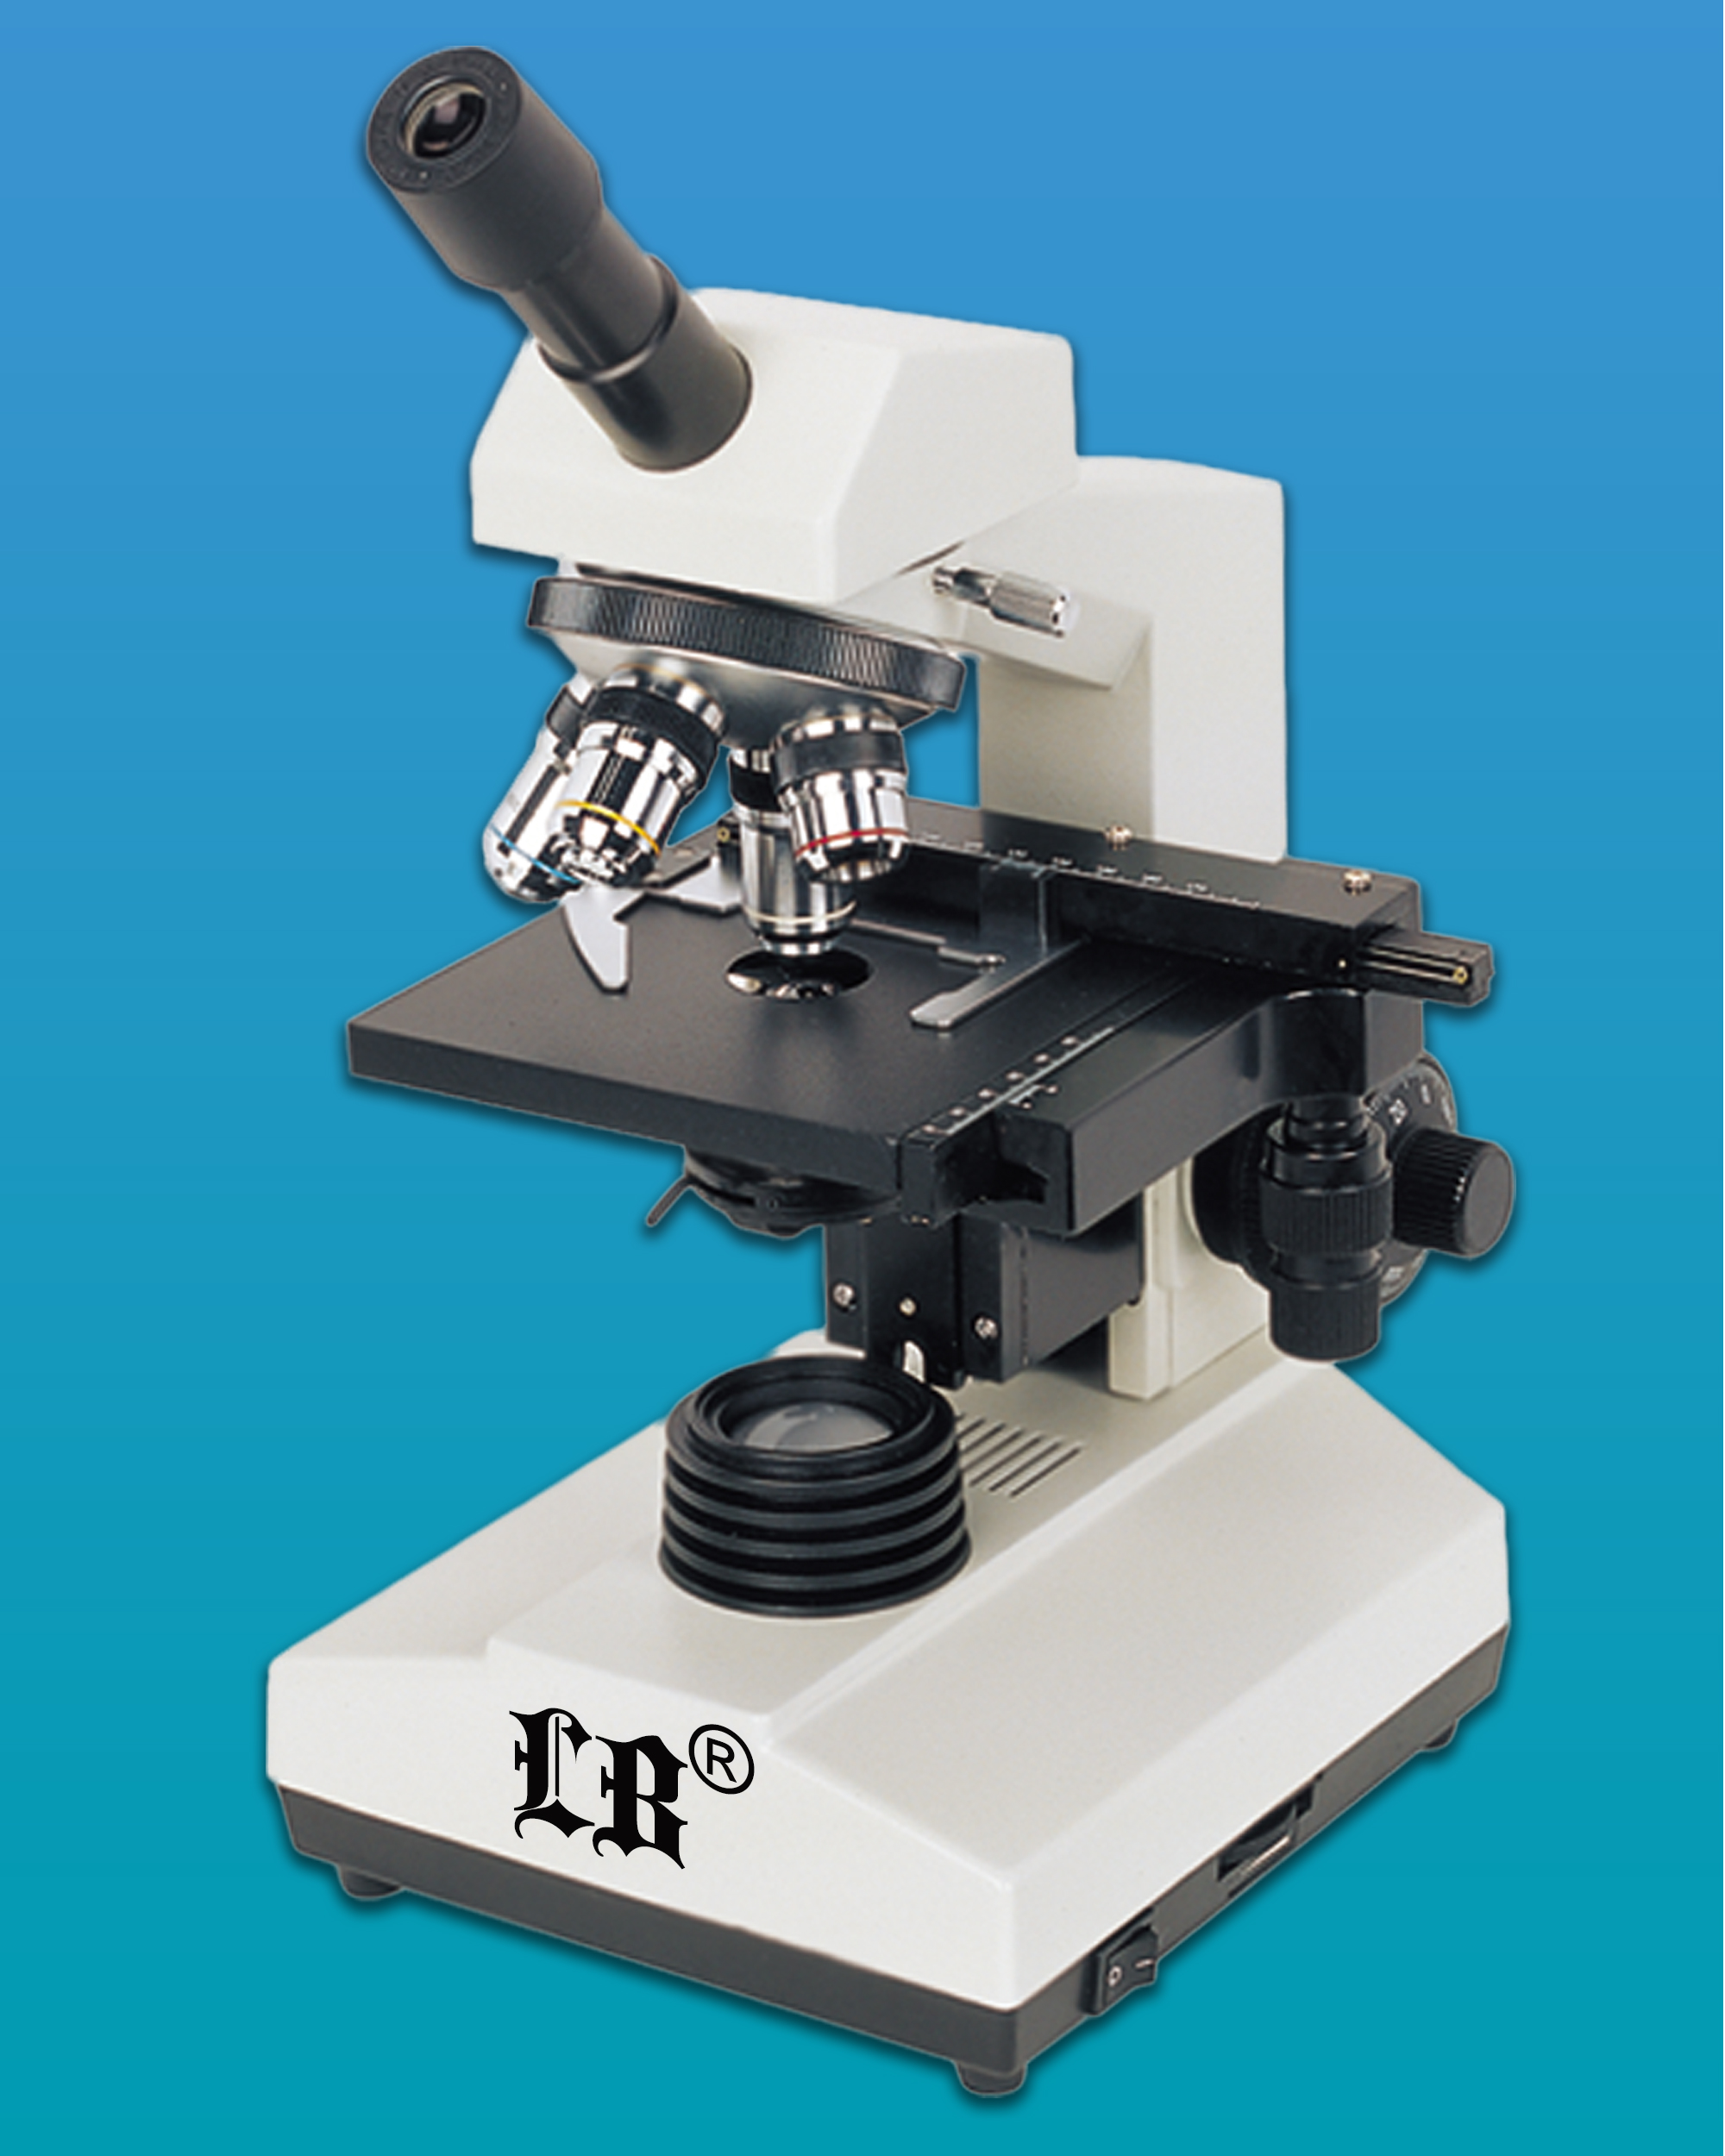 [LB-124] Monocular Biological Microscope